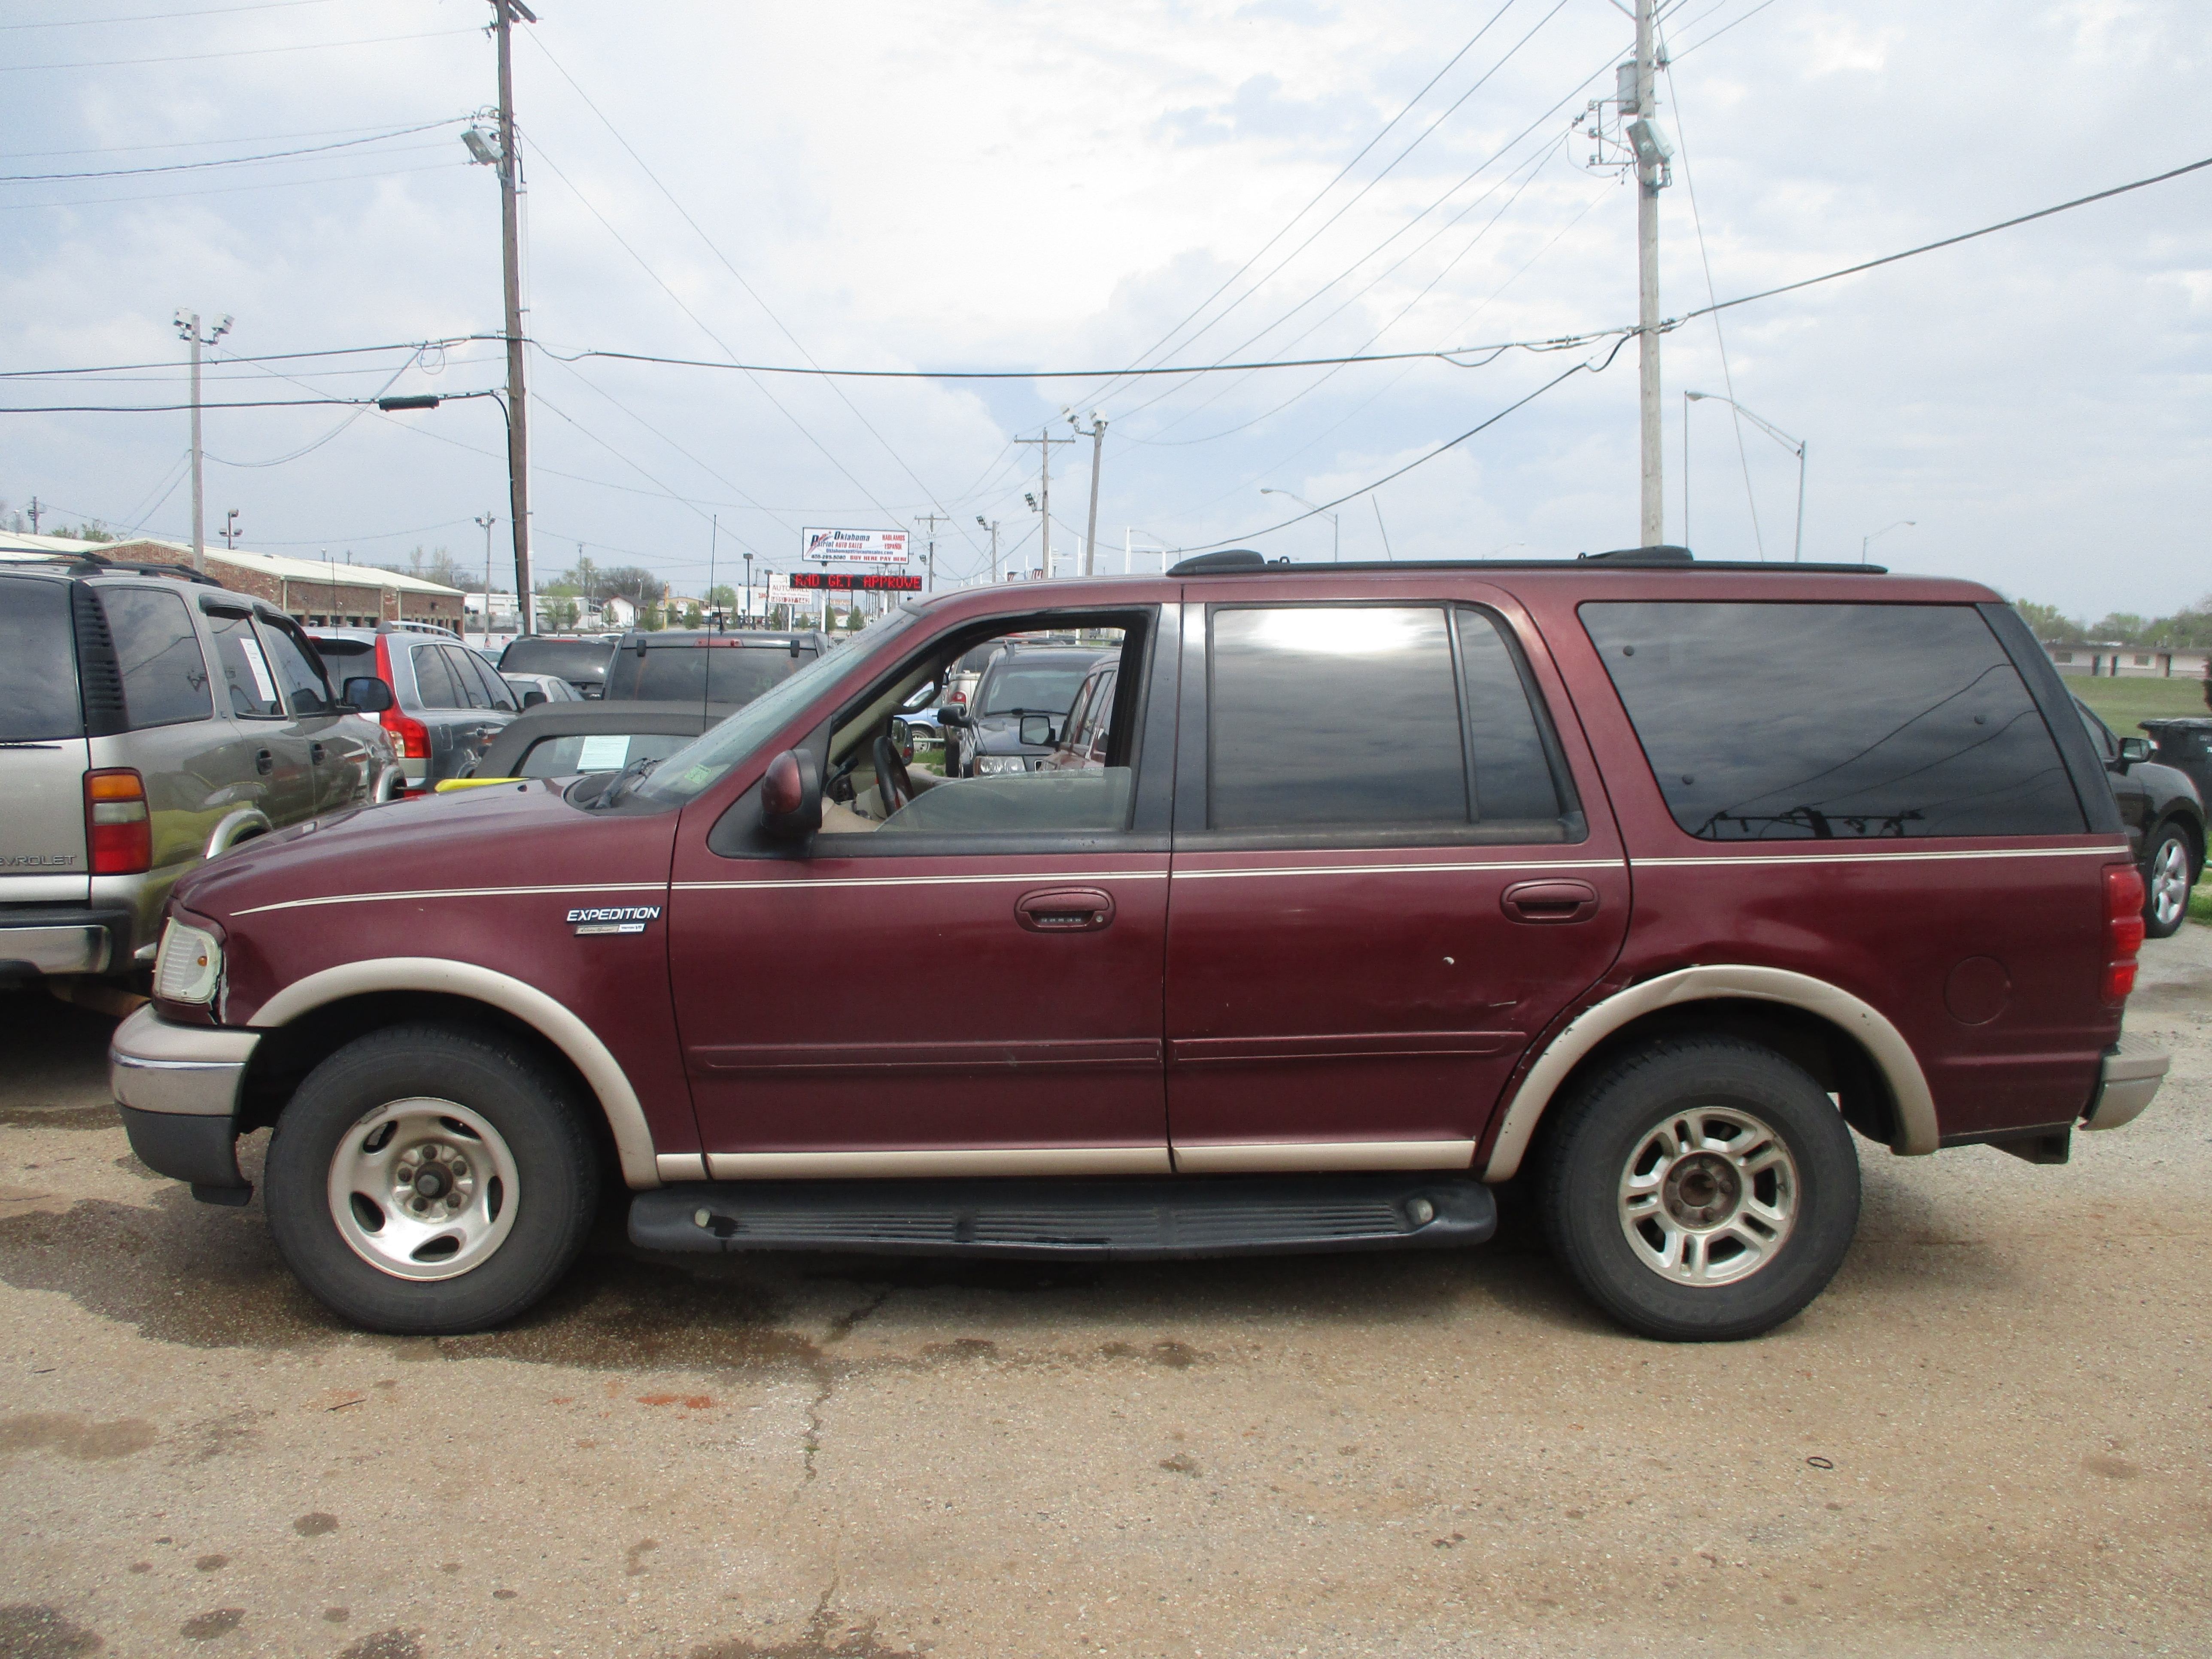 1999 ford expedition eddie bauer buzzzmotors dealership in moore buzzzmotors